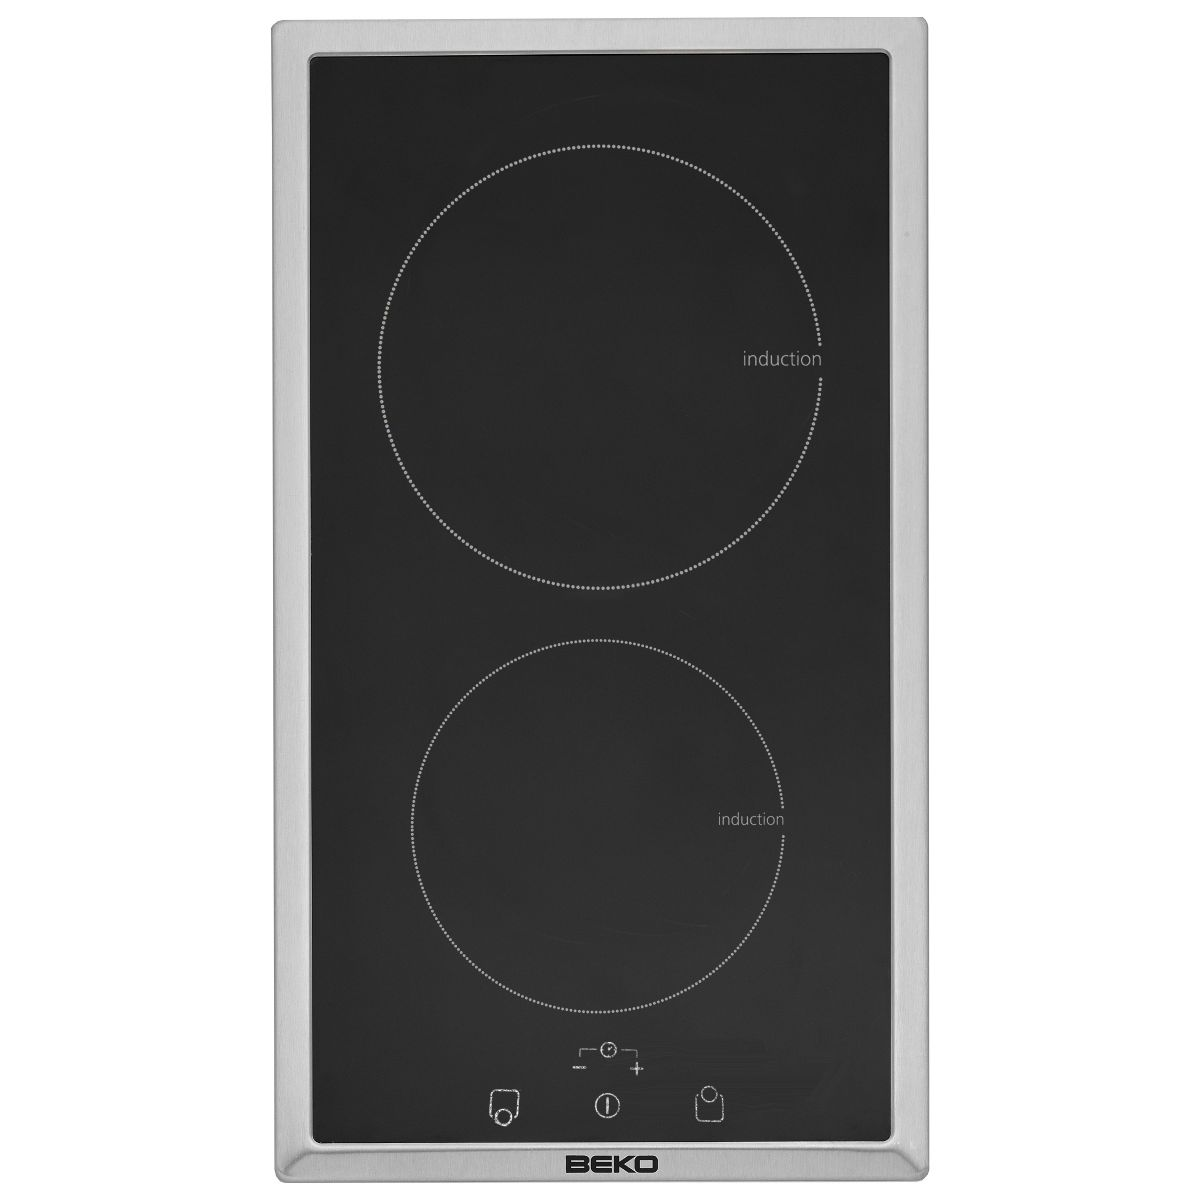 Beko hdmi32400dtx domino induction 2 foyers comparer - Table induction 2 foyers ...